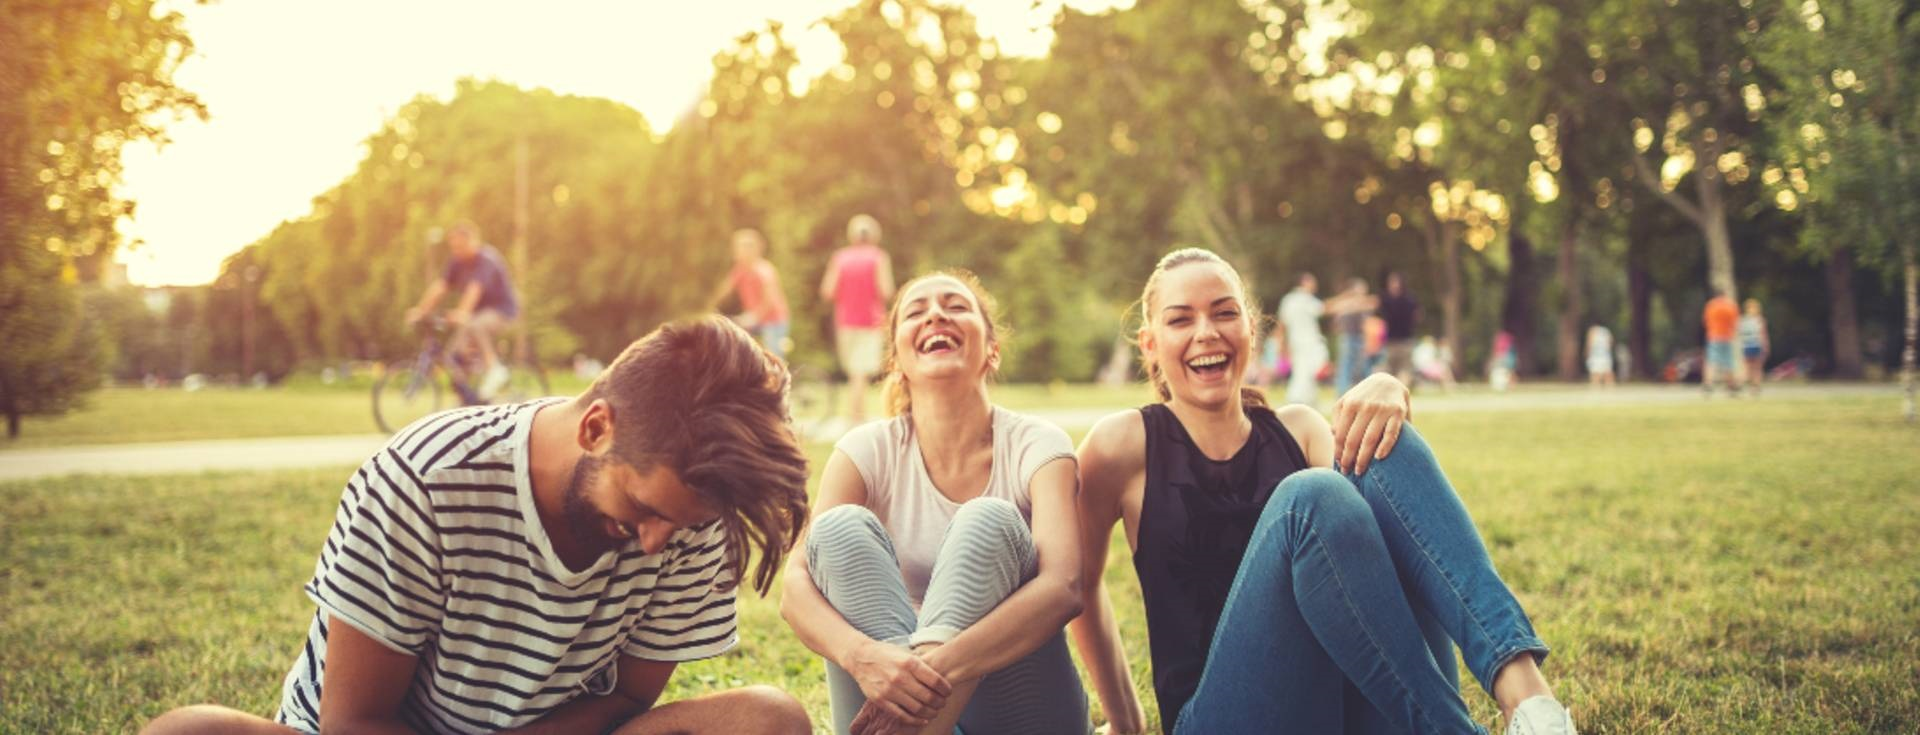 Three friends sitting on the grass laughing happily.